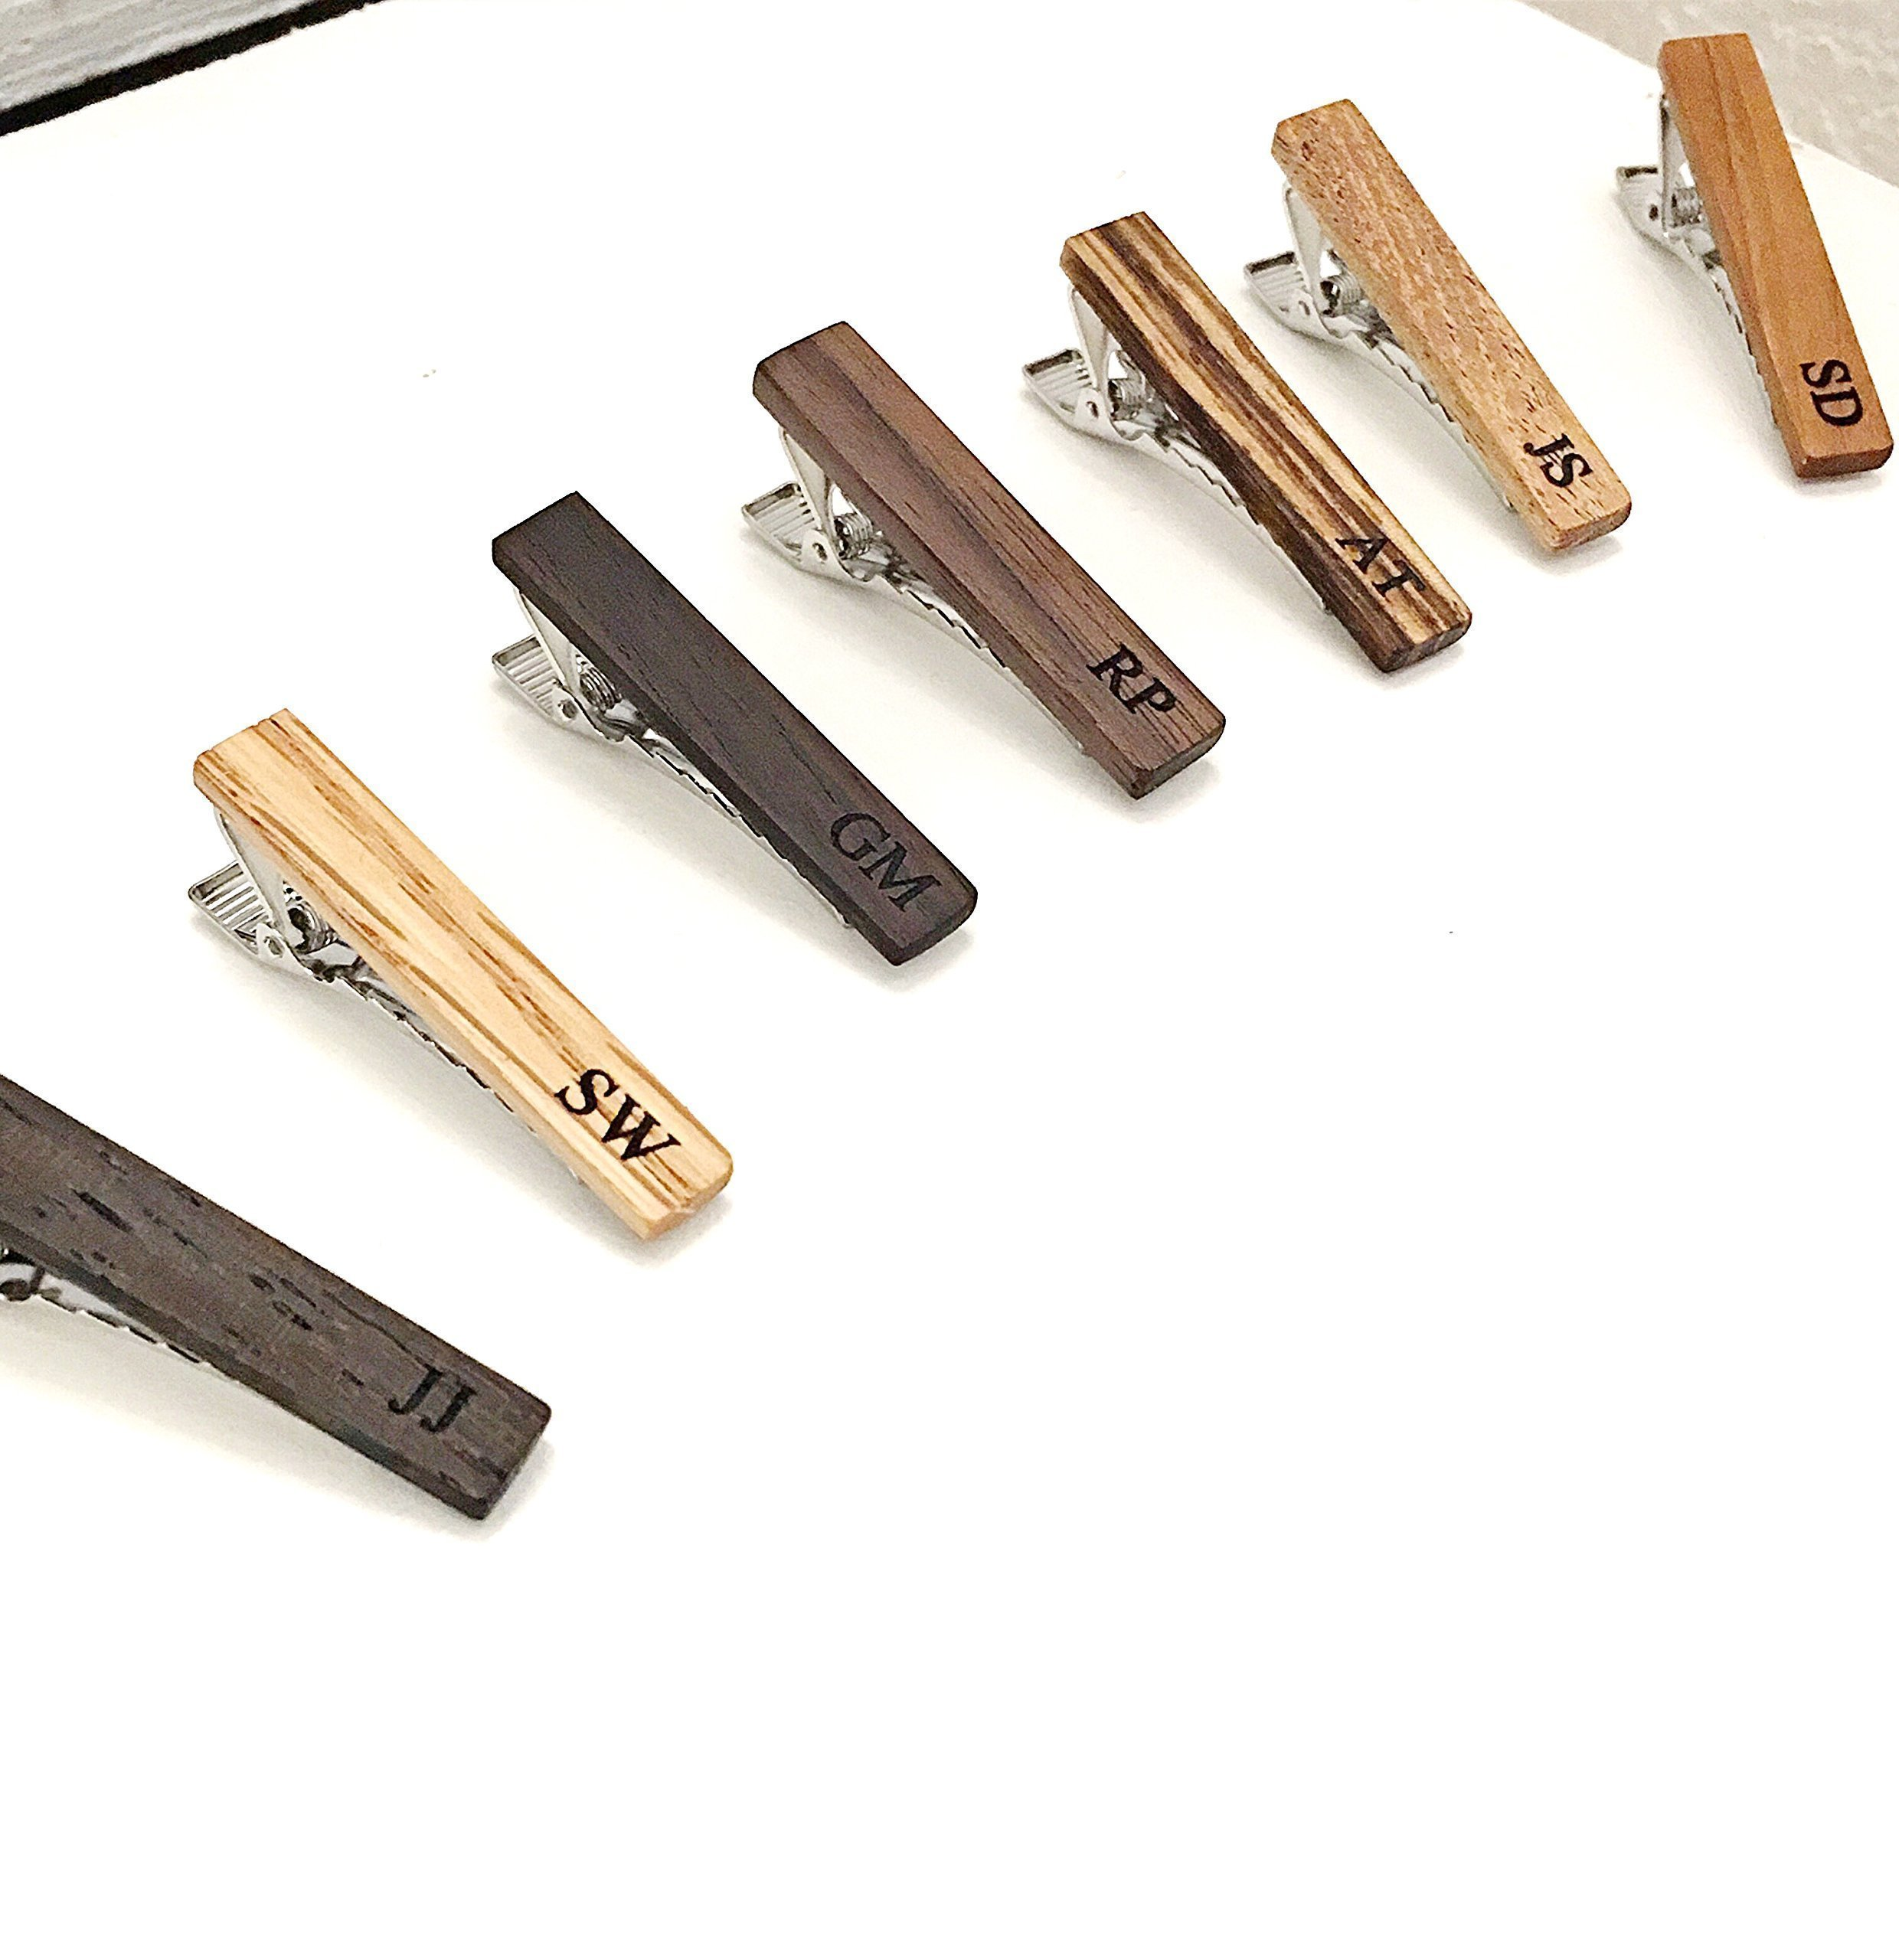 Wood cufflinks, handcrafted wooden cufflinks rosewood, walnut ,and more woods